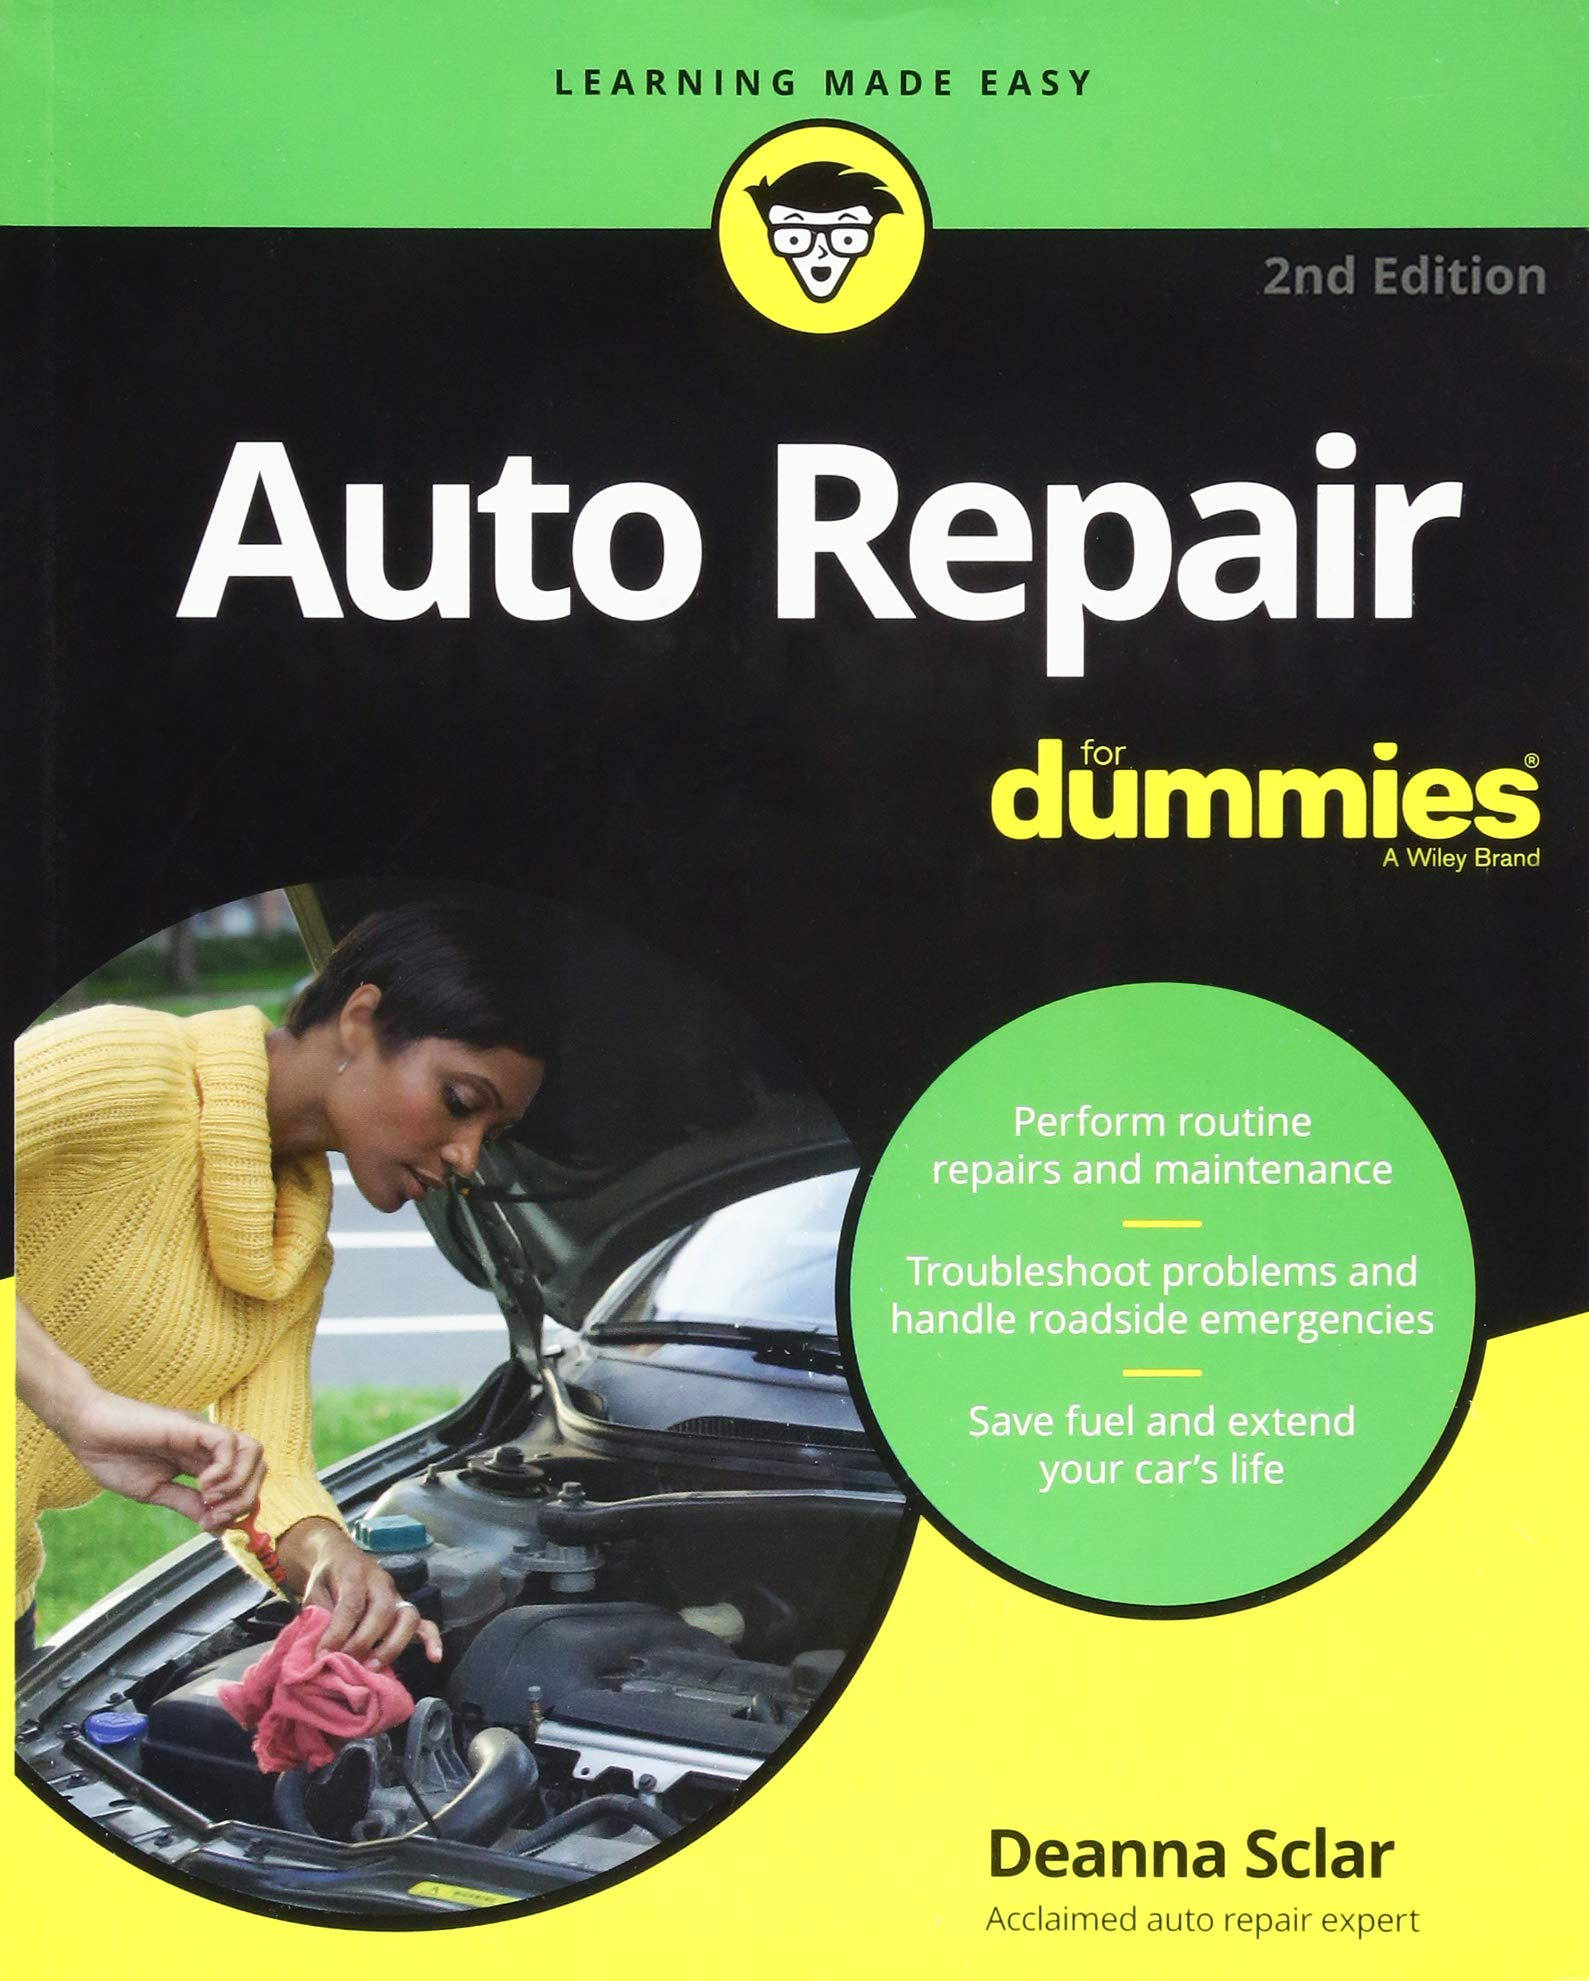 Auto Repair For Dummies by For Dummies